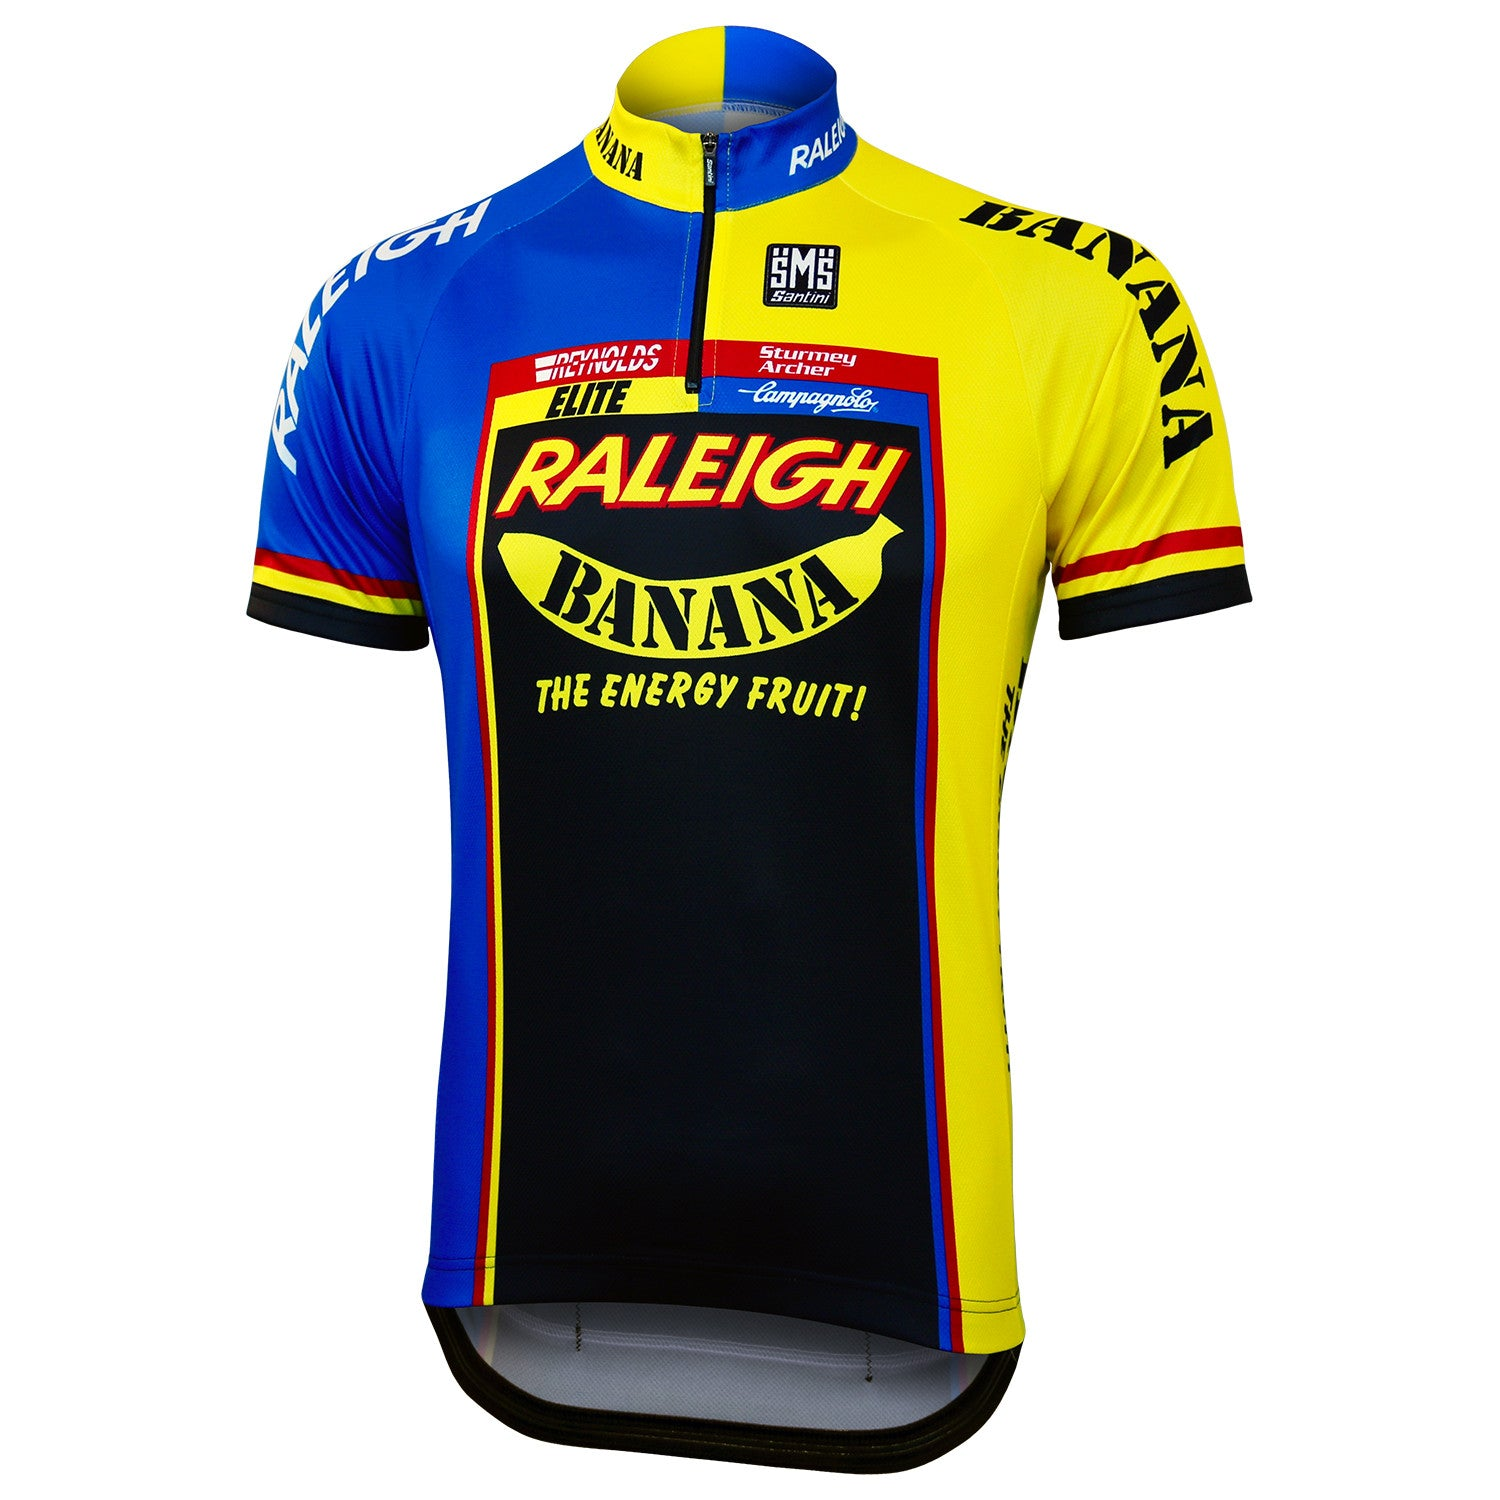 Raleigh Banana Retro Jersey